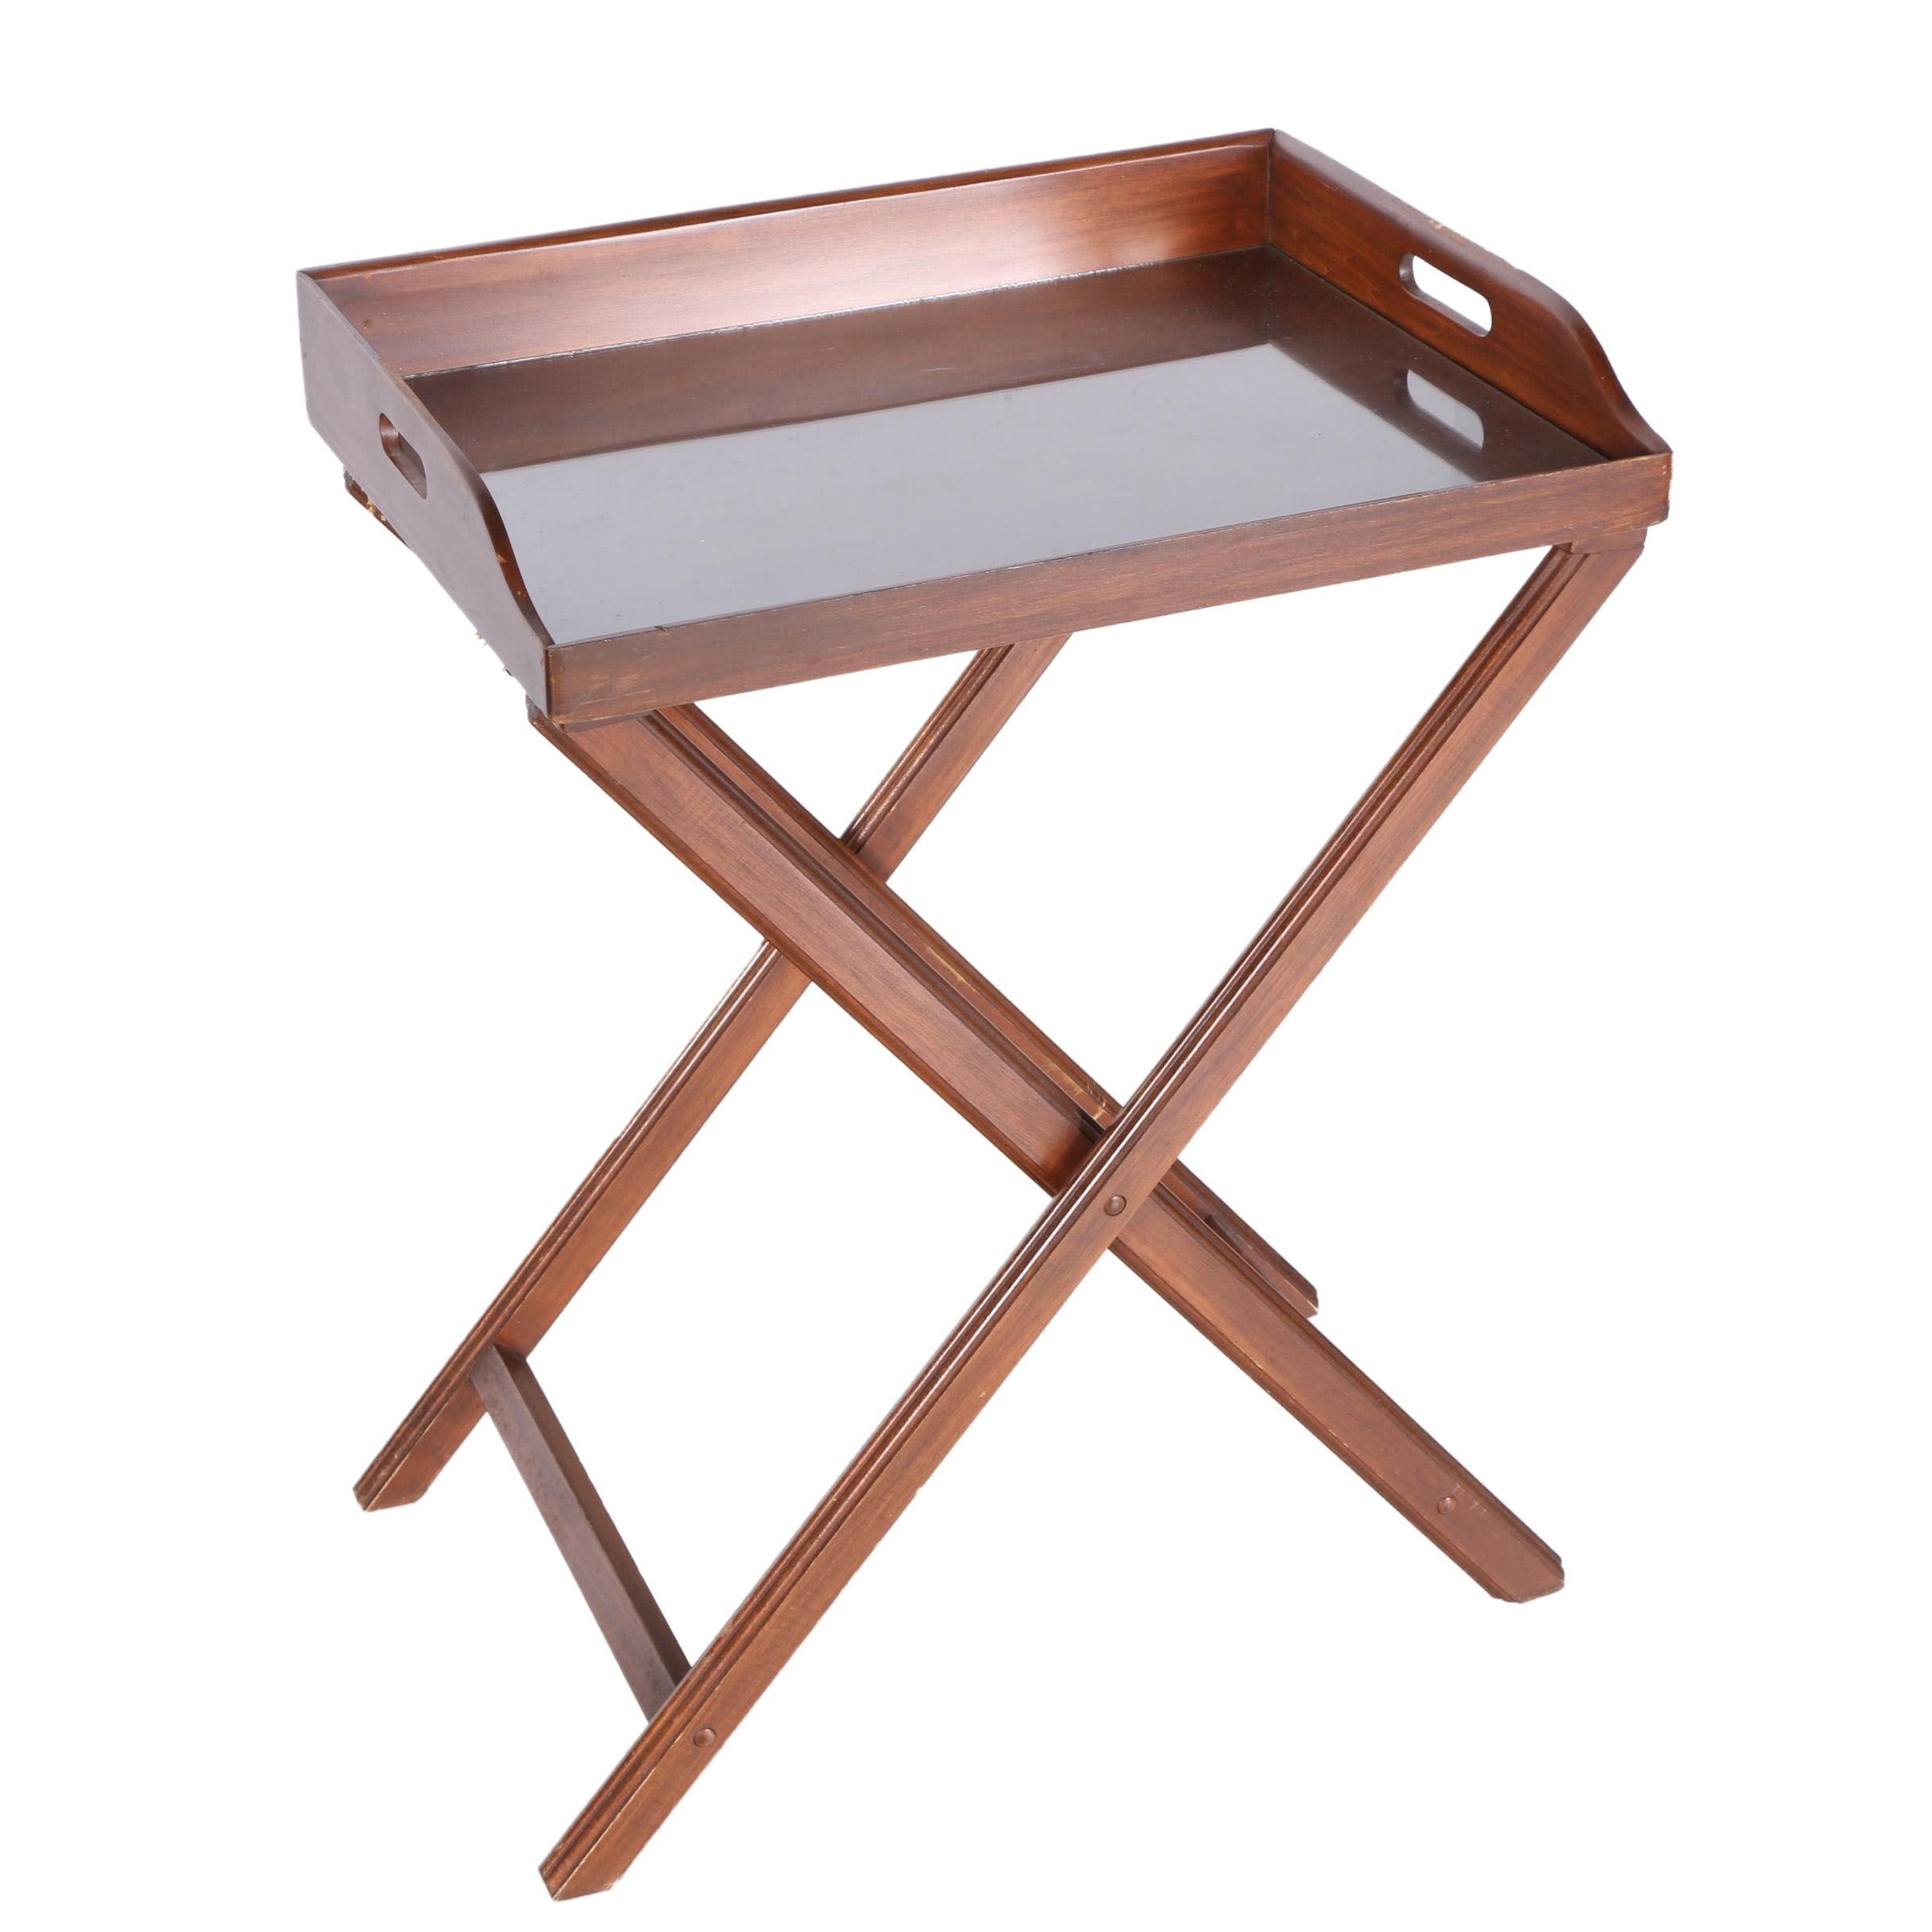 Wooden Serving Tray on Folding Stand